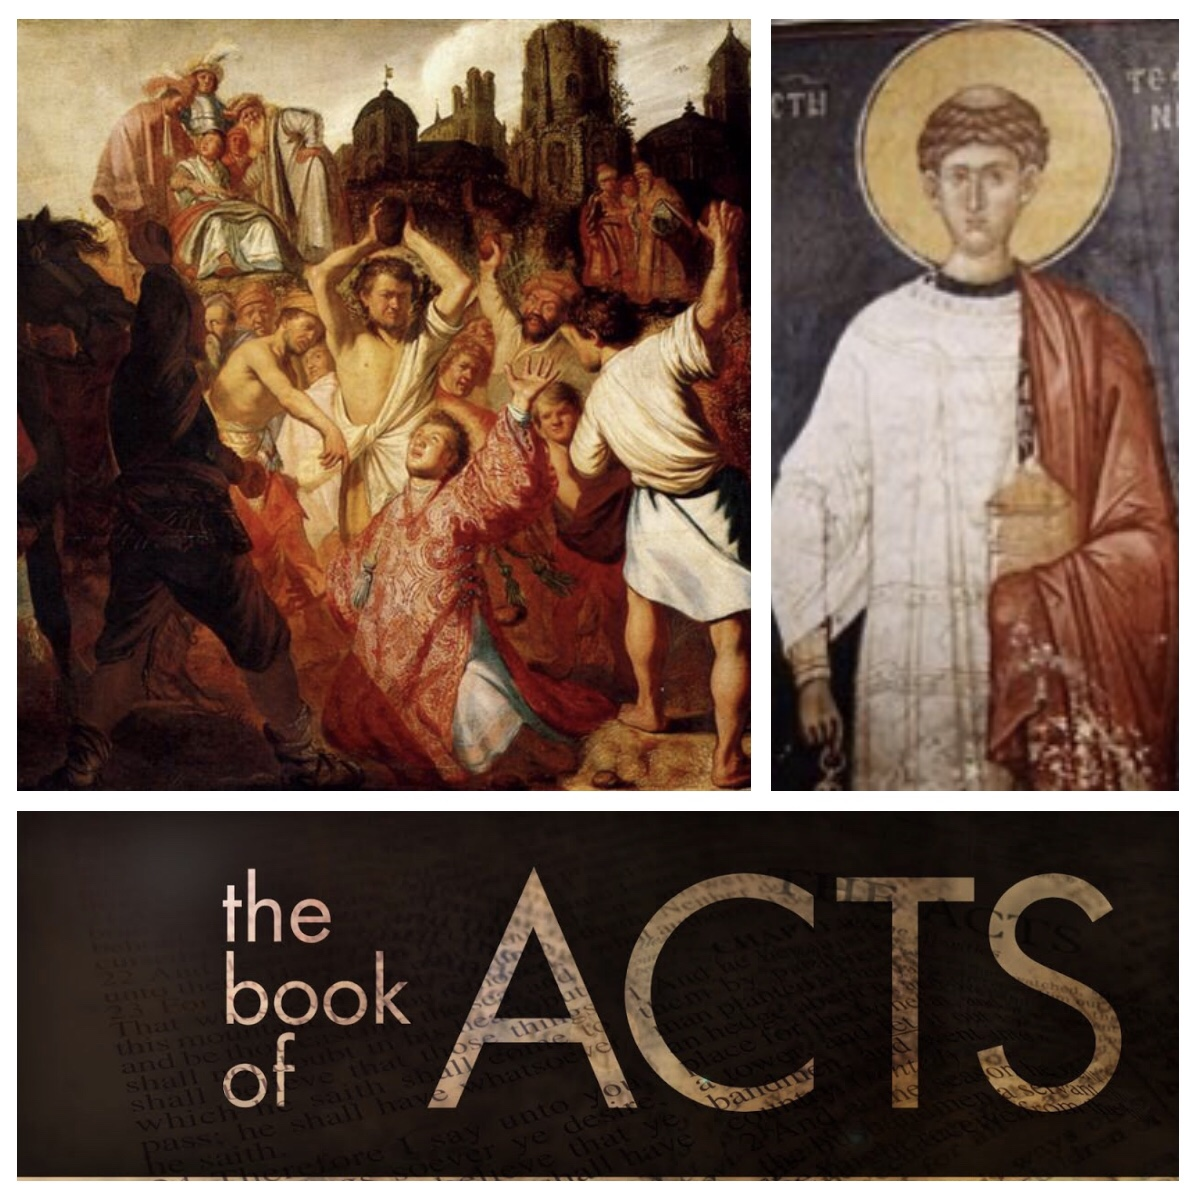 The heavens opened: the witness of Stephen (Acts7)